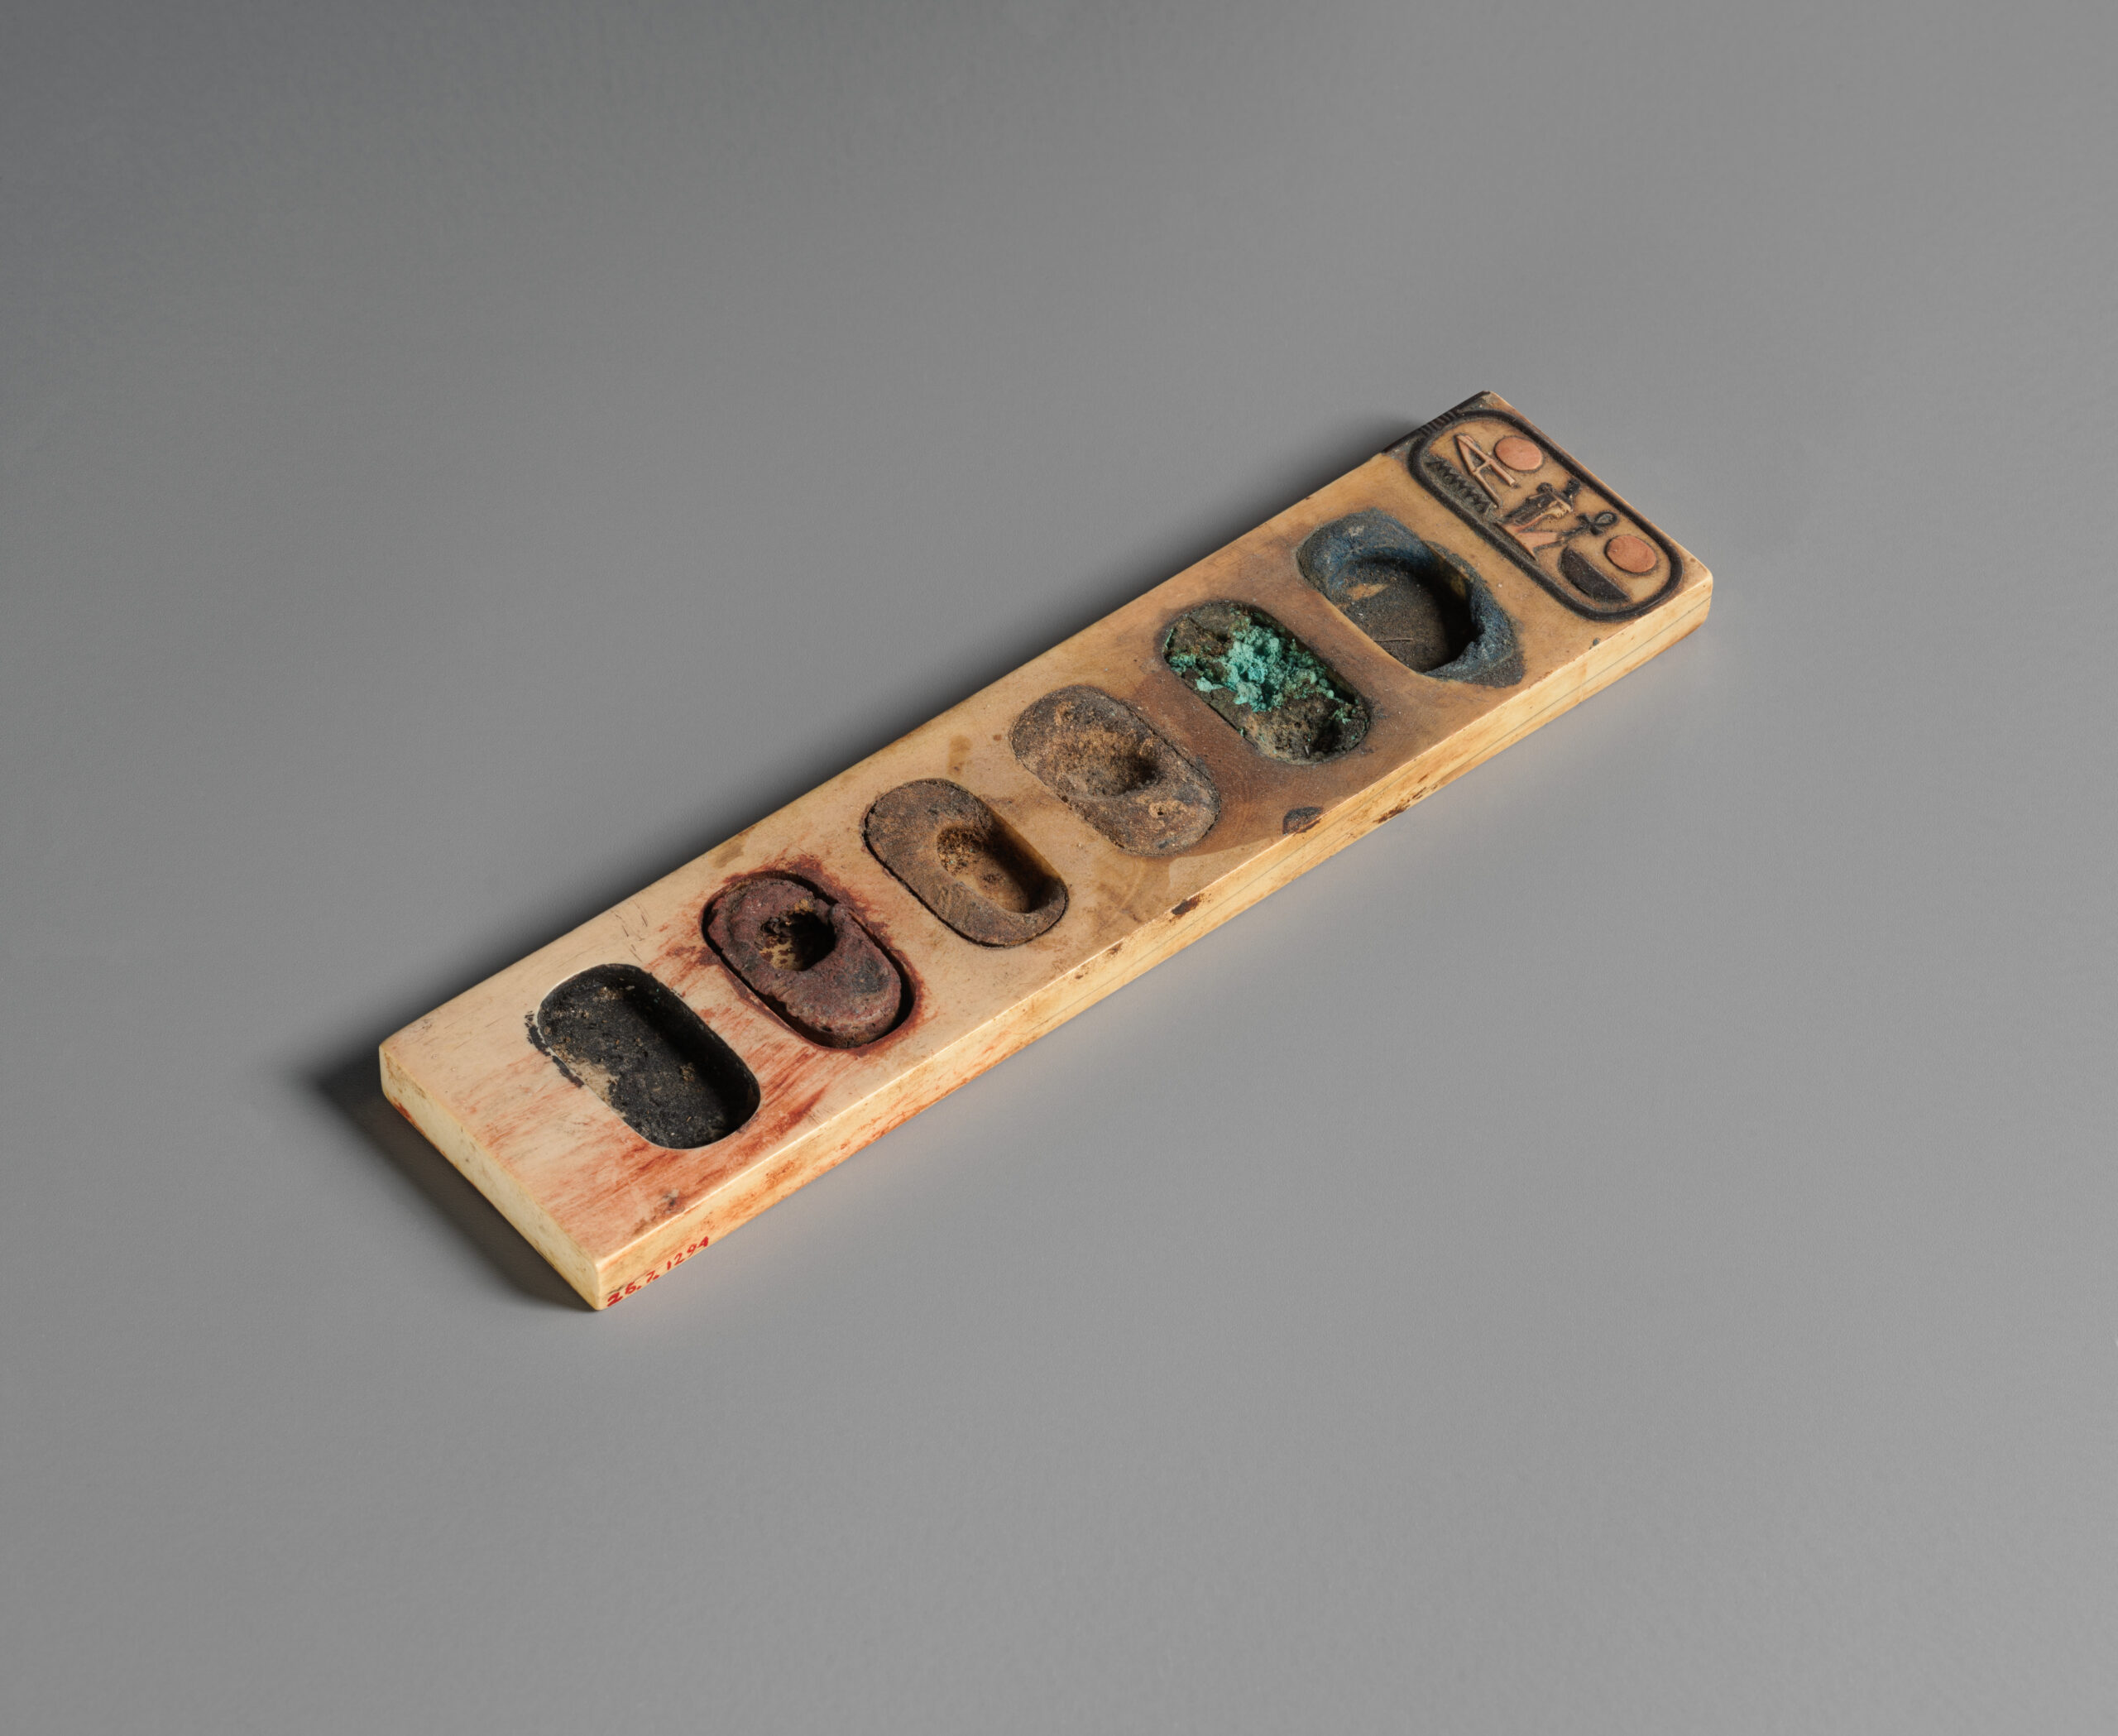 A 3,000-Year-Old Painter's Palette from Ancient Egypt, with Traces of the Original Colors Still In It